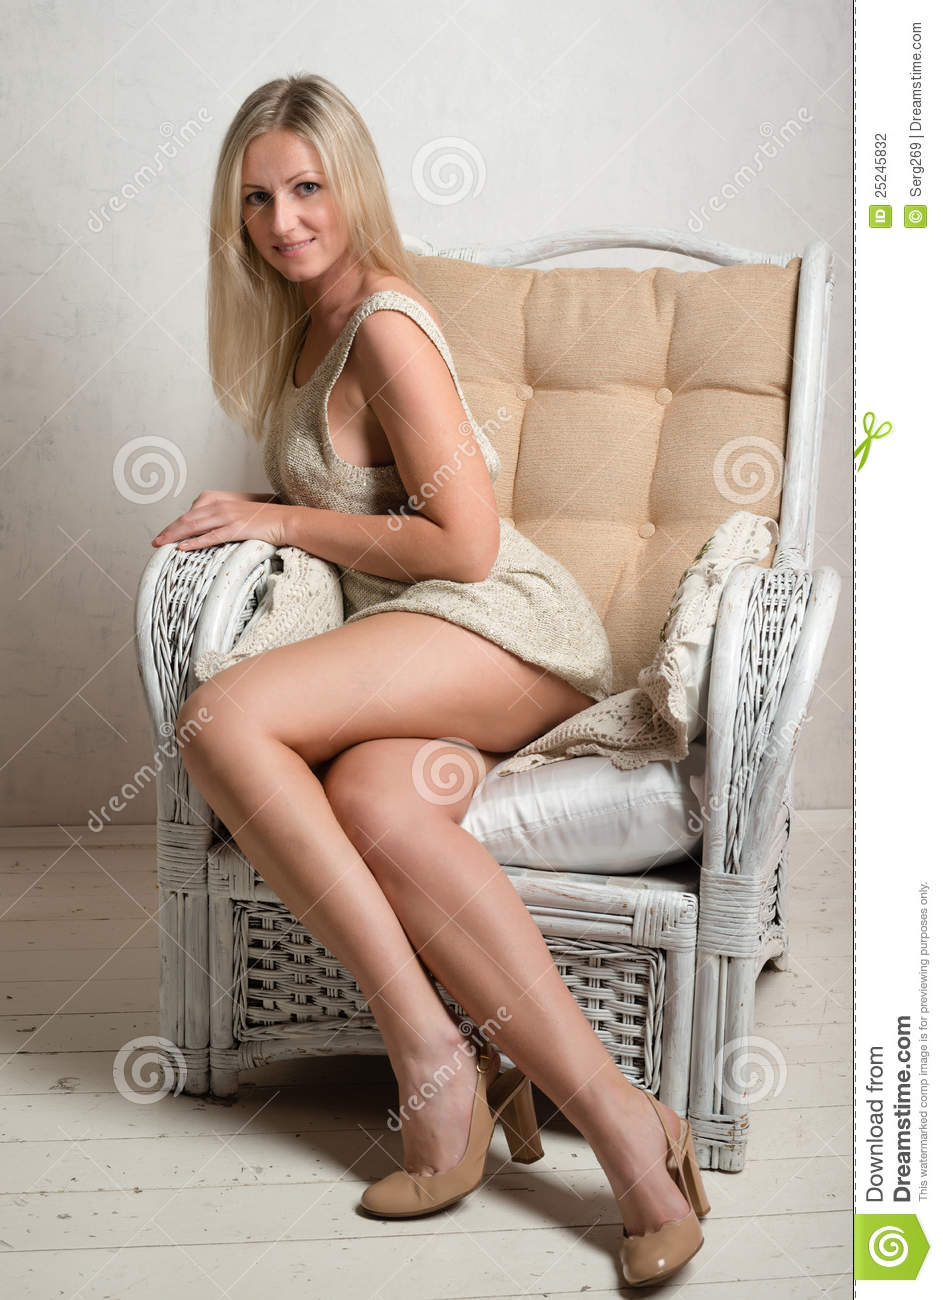 Smiling Woman In Short Dress Is Posing On A Chair Stock